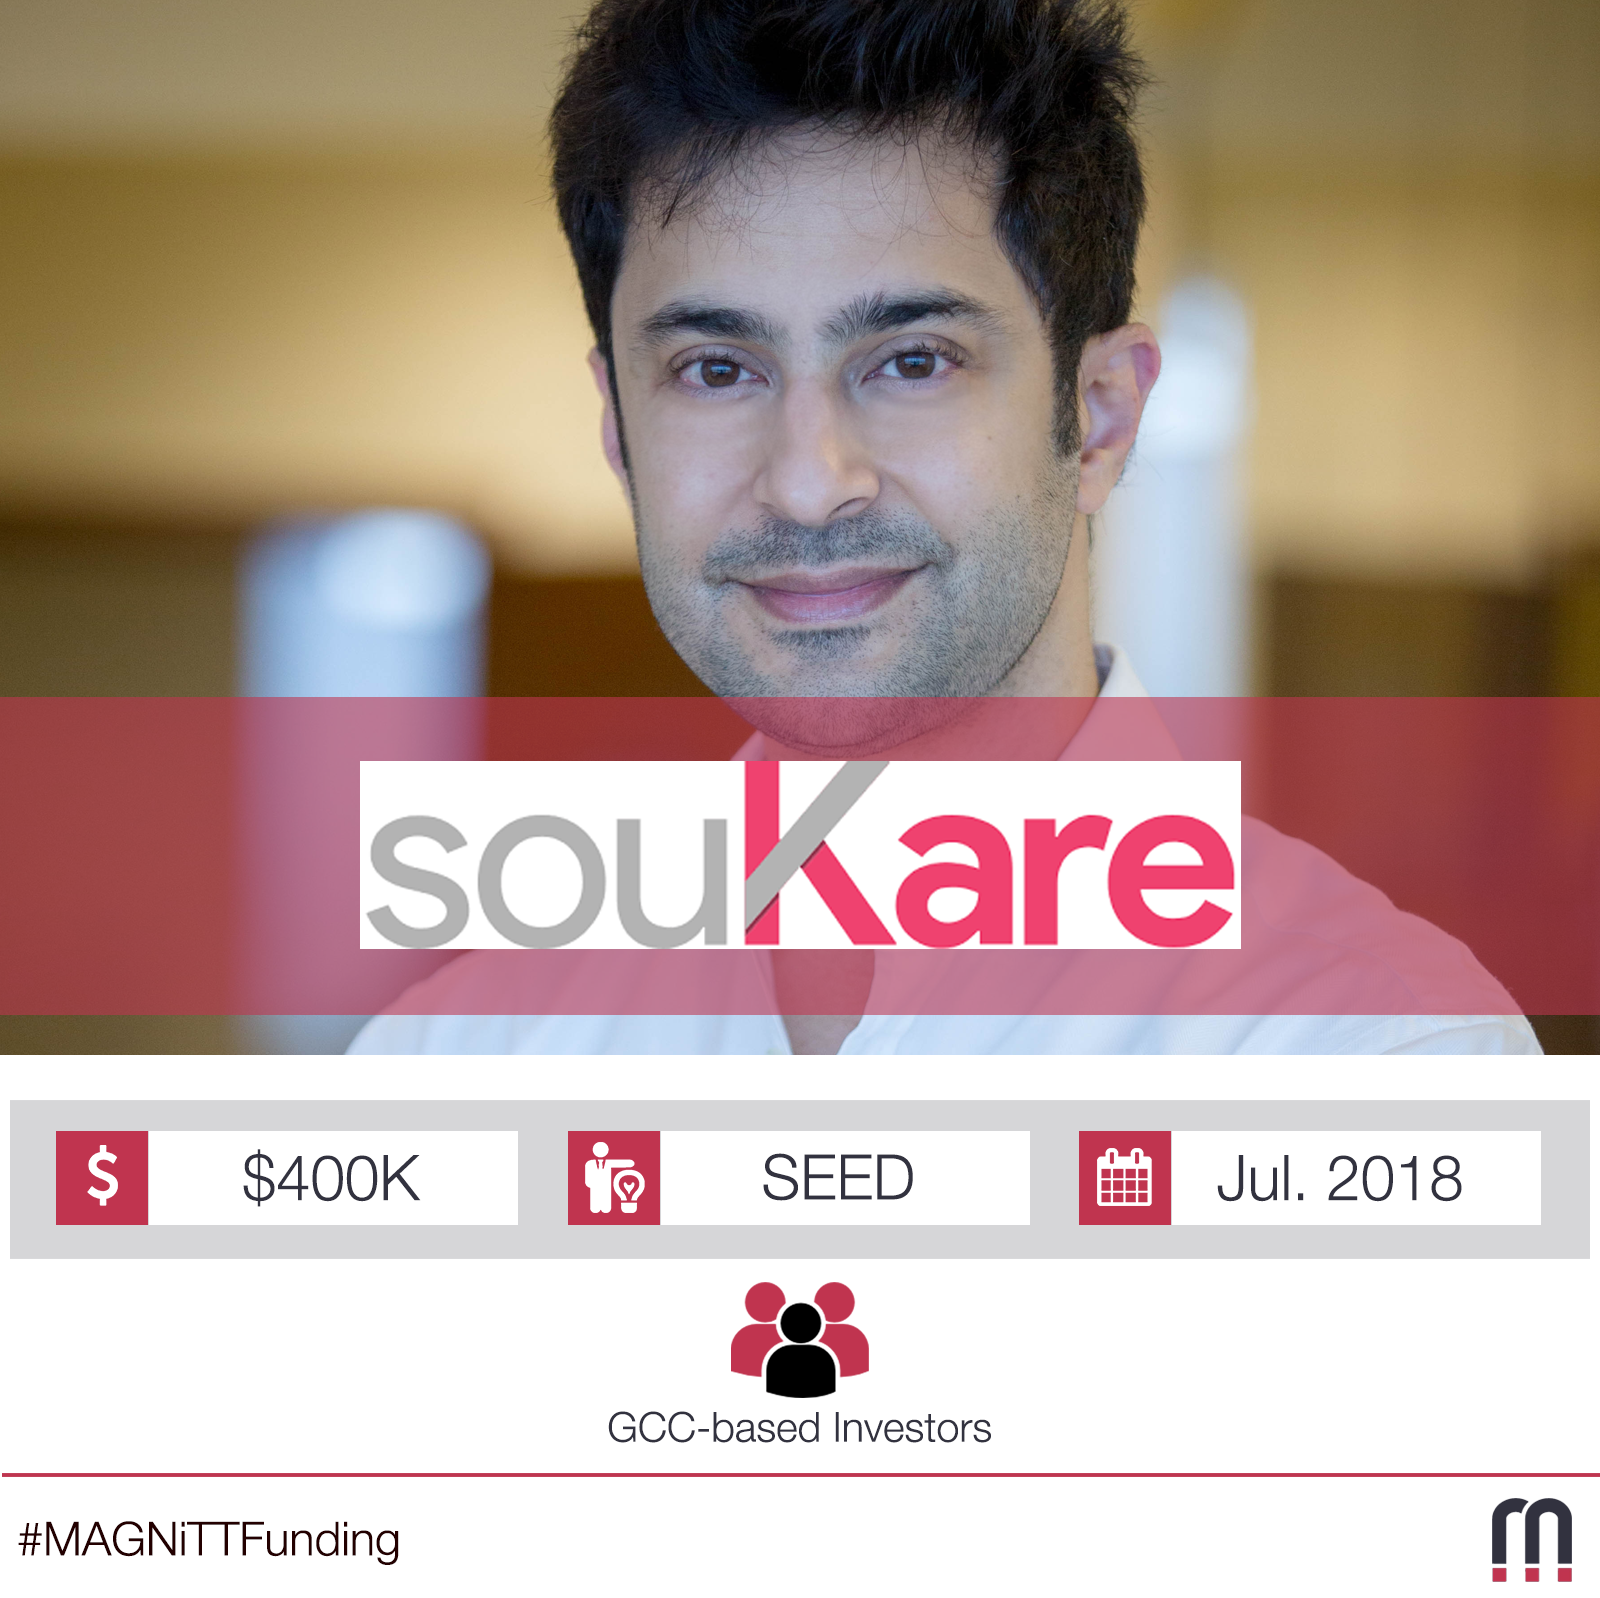 Lifestyle and Healthcare E-Commerce Startup souKare.com raises USD400,000